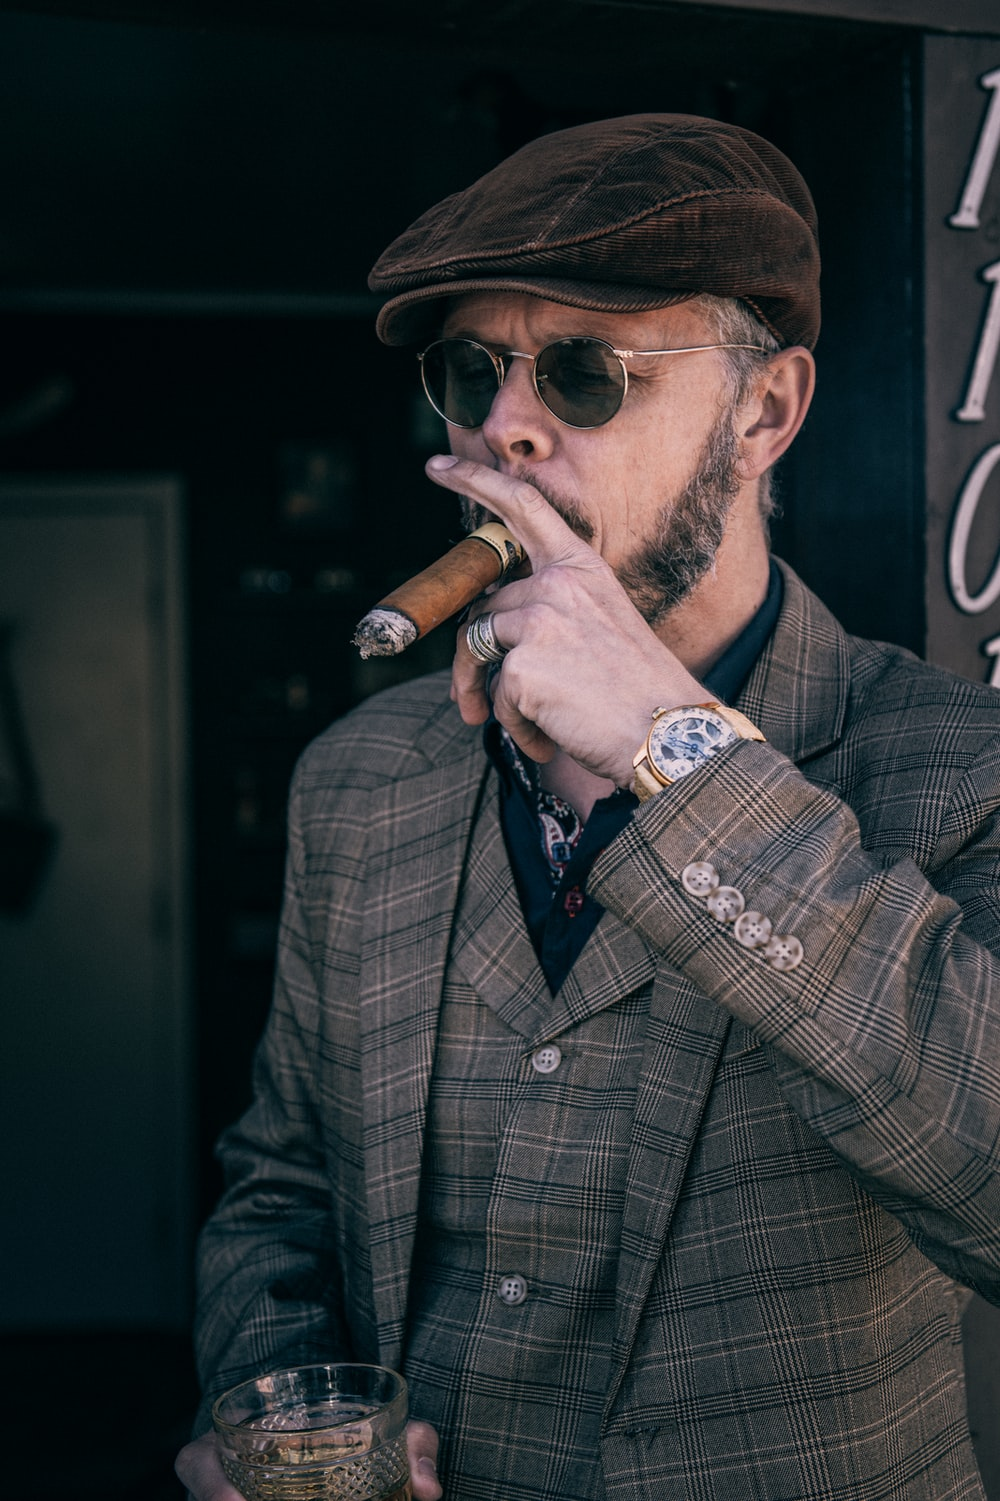 man in brown and black plaid coat smoking cigarette